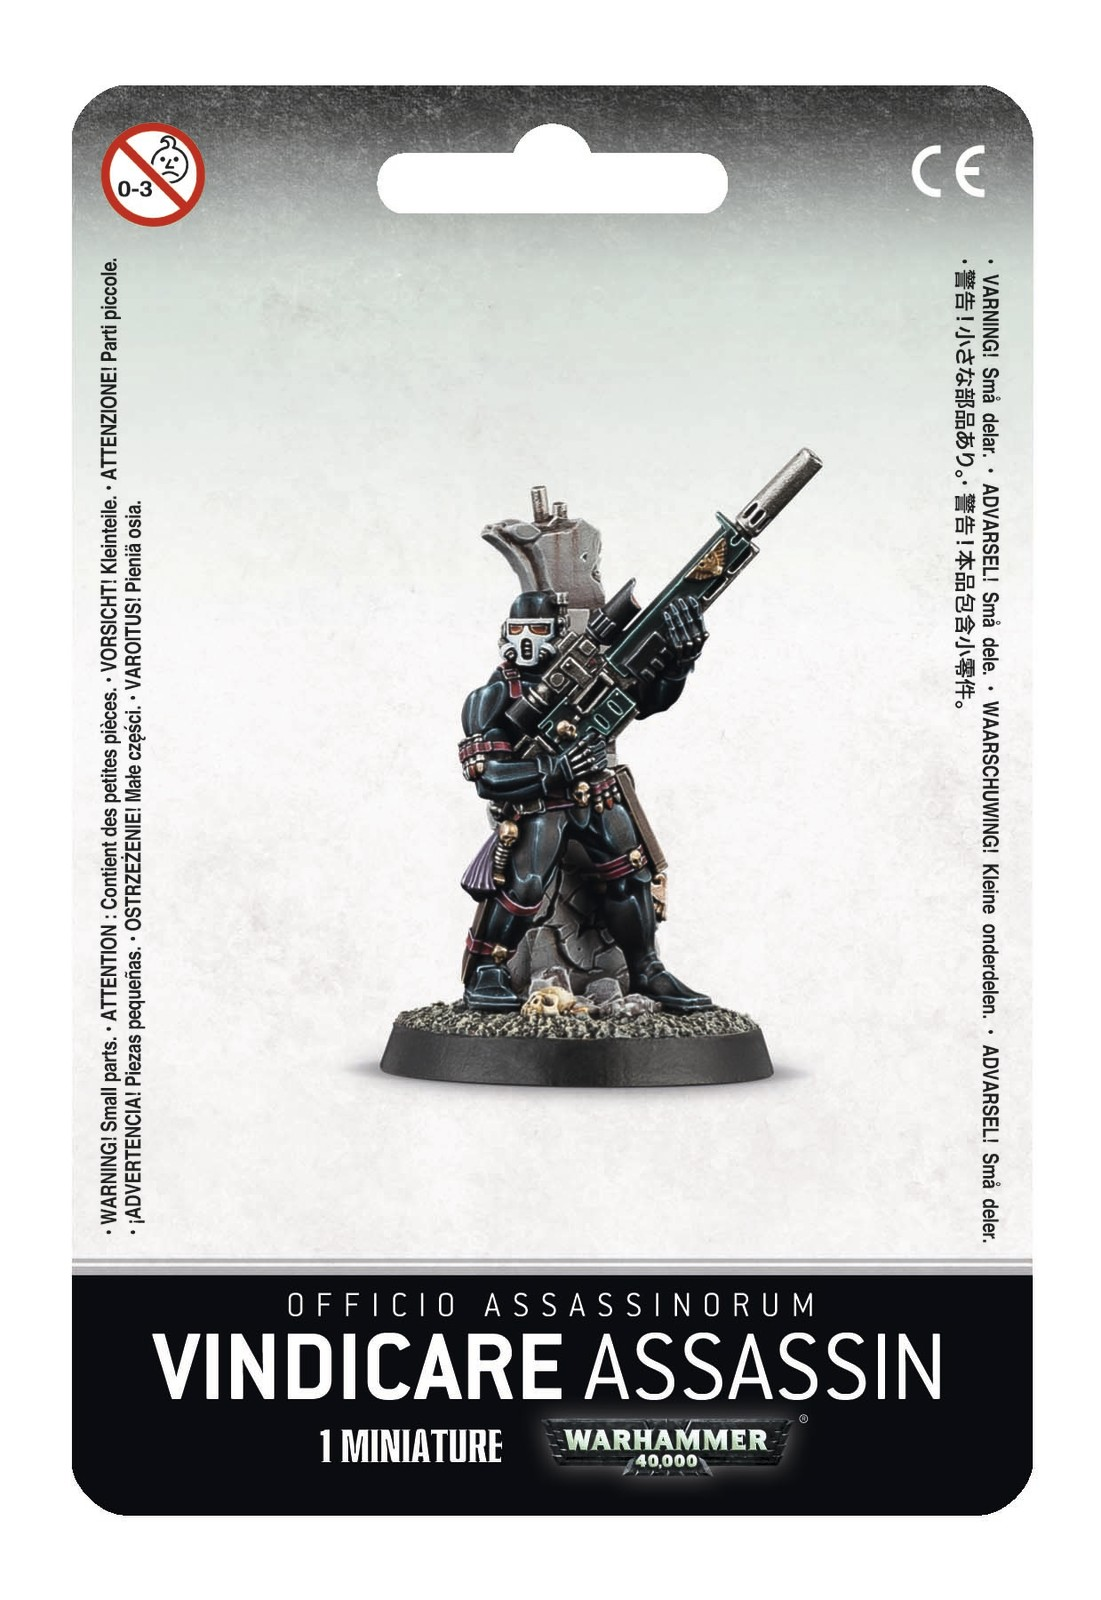 Warhammer 40,000 Officio Assassinorum: Vindicare Assassin image